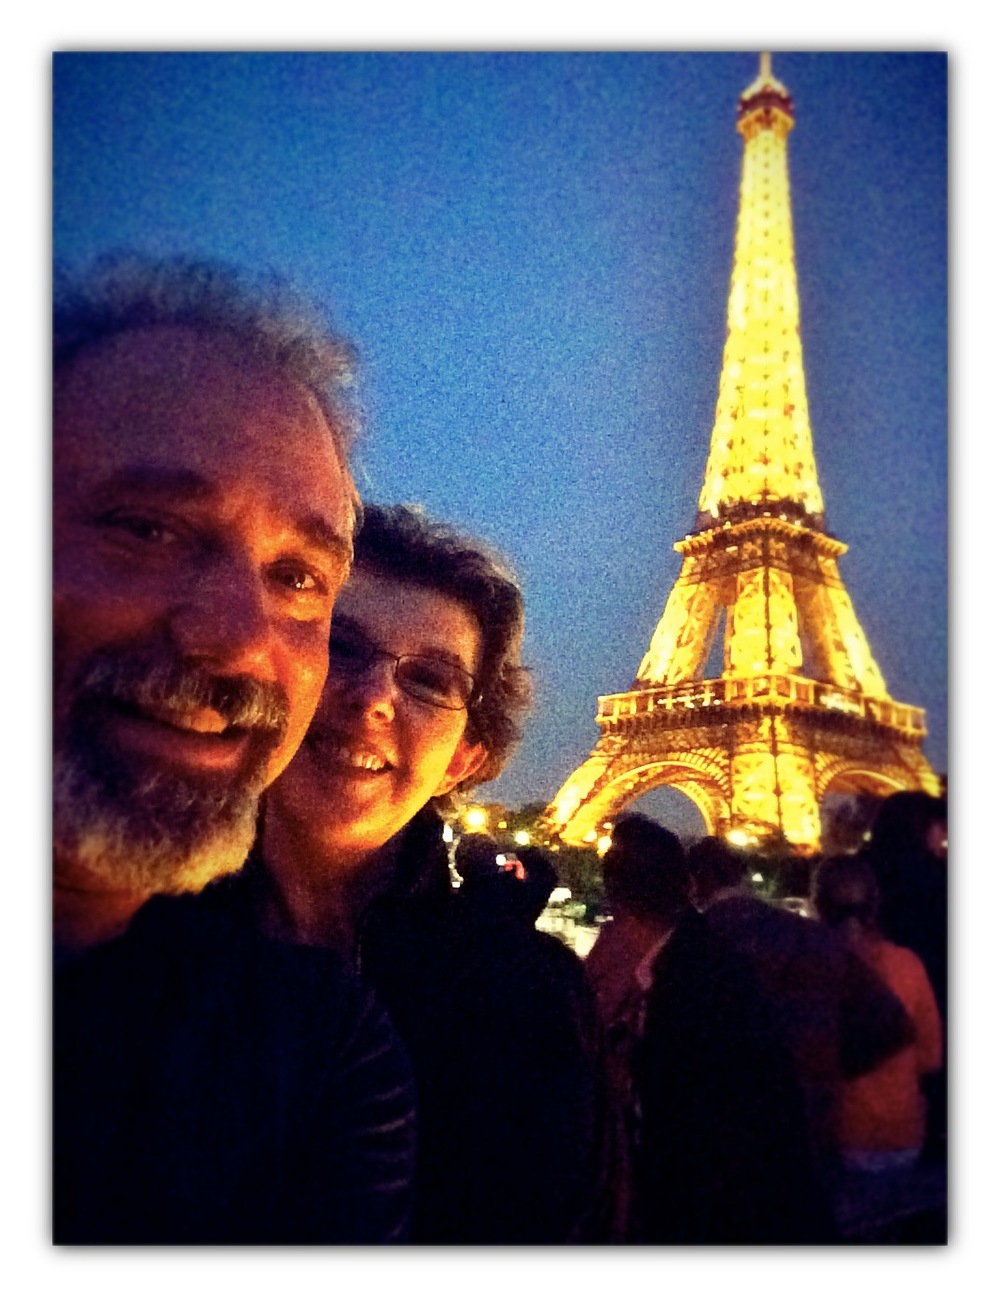 David and Pauline Aft posing with the grand Eiffel Tower.